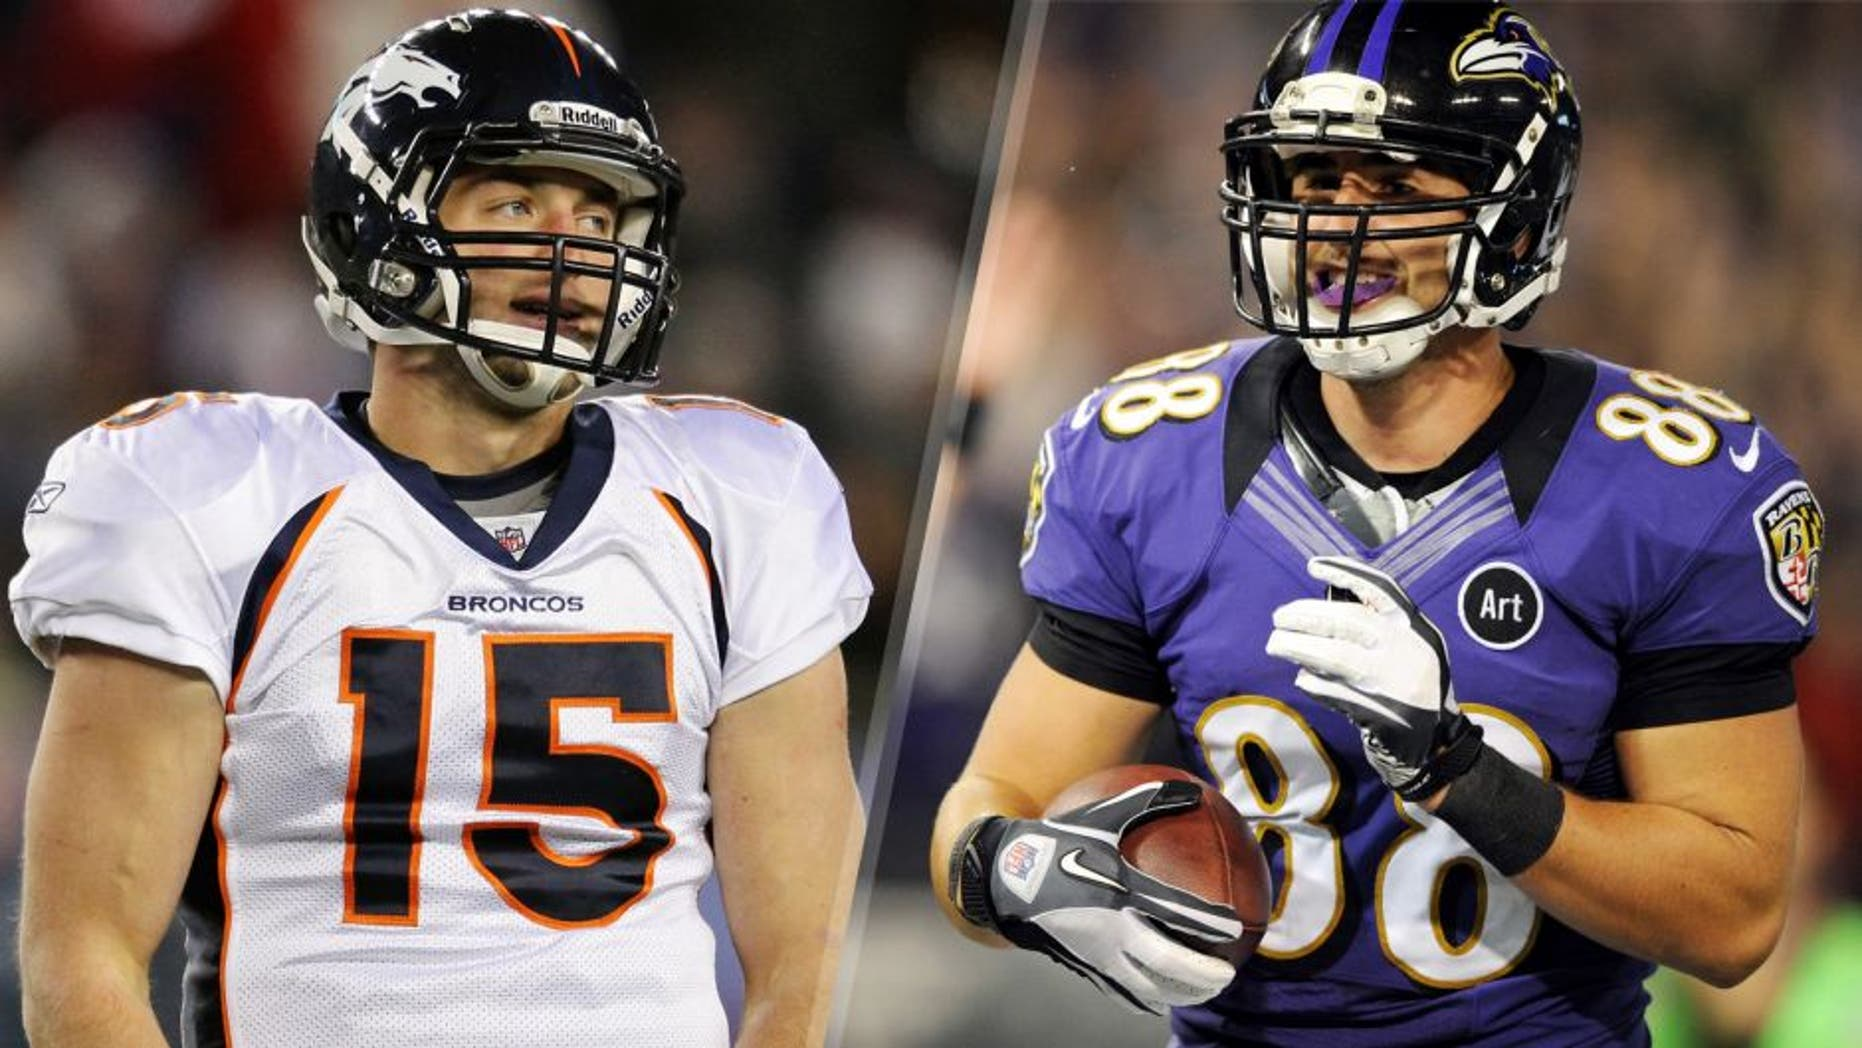 super popular 985d0 20fe1 The Ravens clearly won the Tim Tebow trade 6 years ago | Fox ...